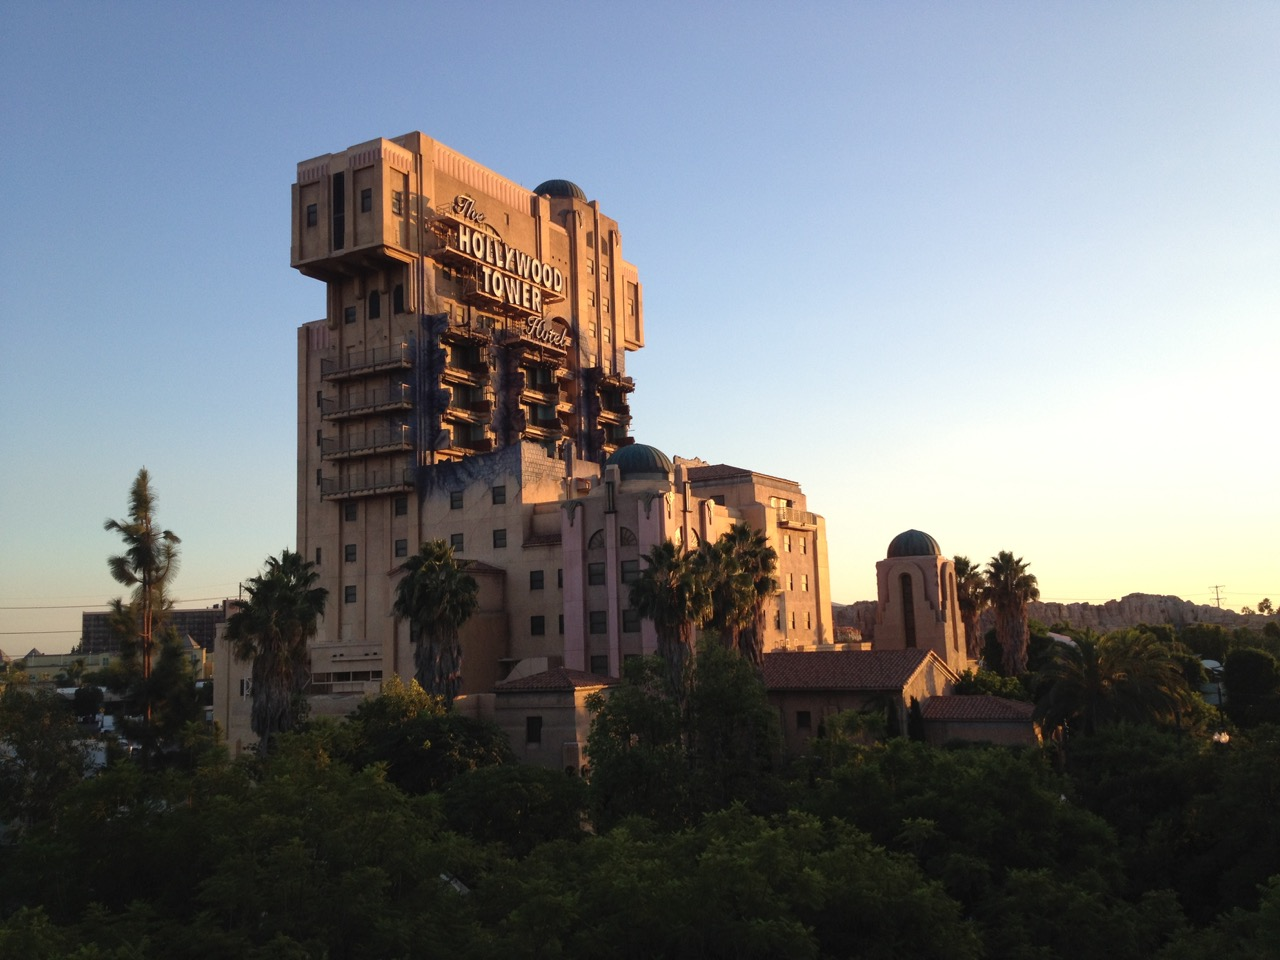 Twilight perfectly captures the Twilight Zone Tower of Terror. Photo by J. Jeff Kober.